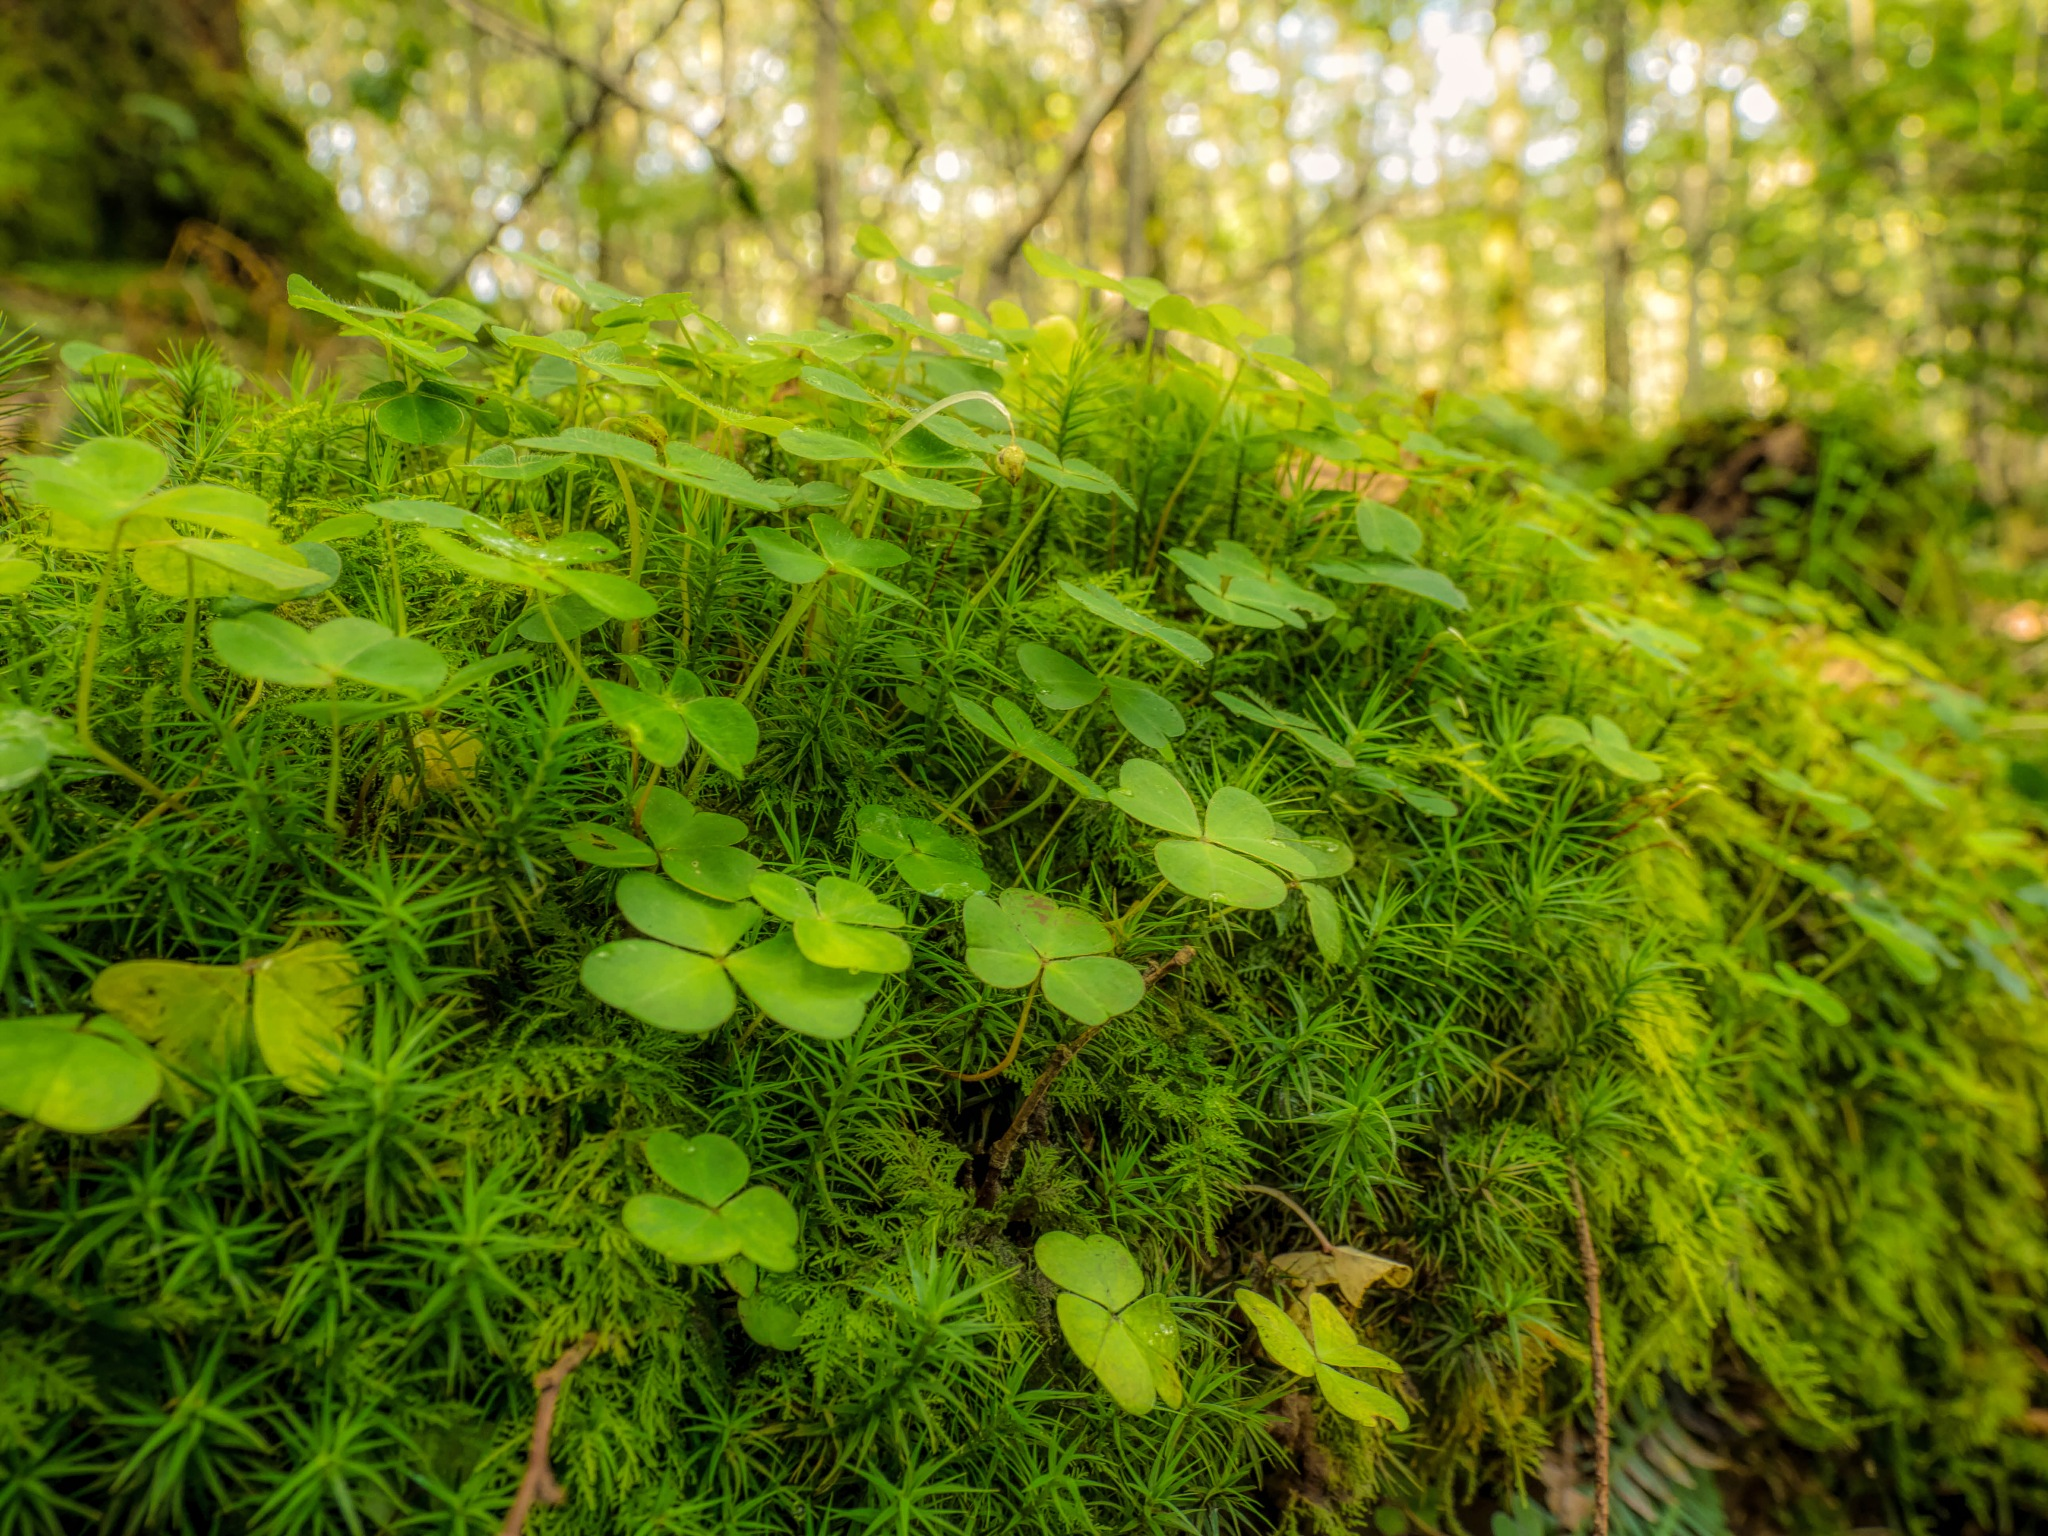 Wood Sorrel and Moss by Sarah Walters